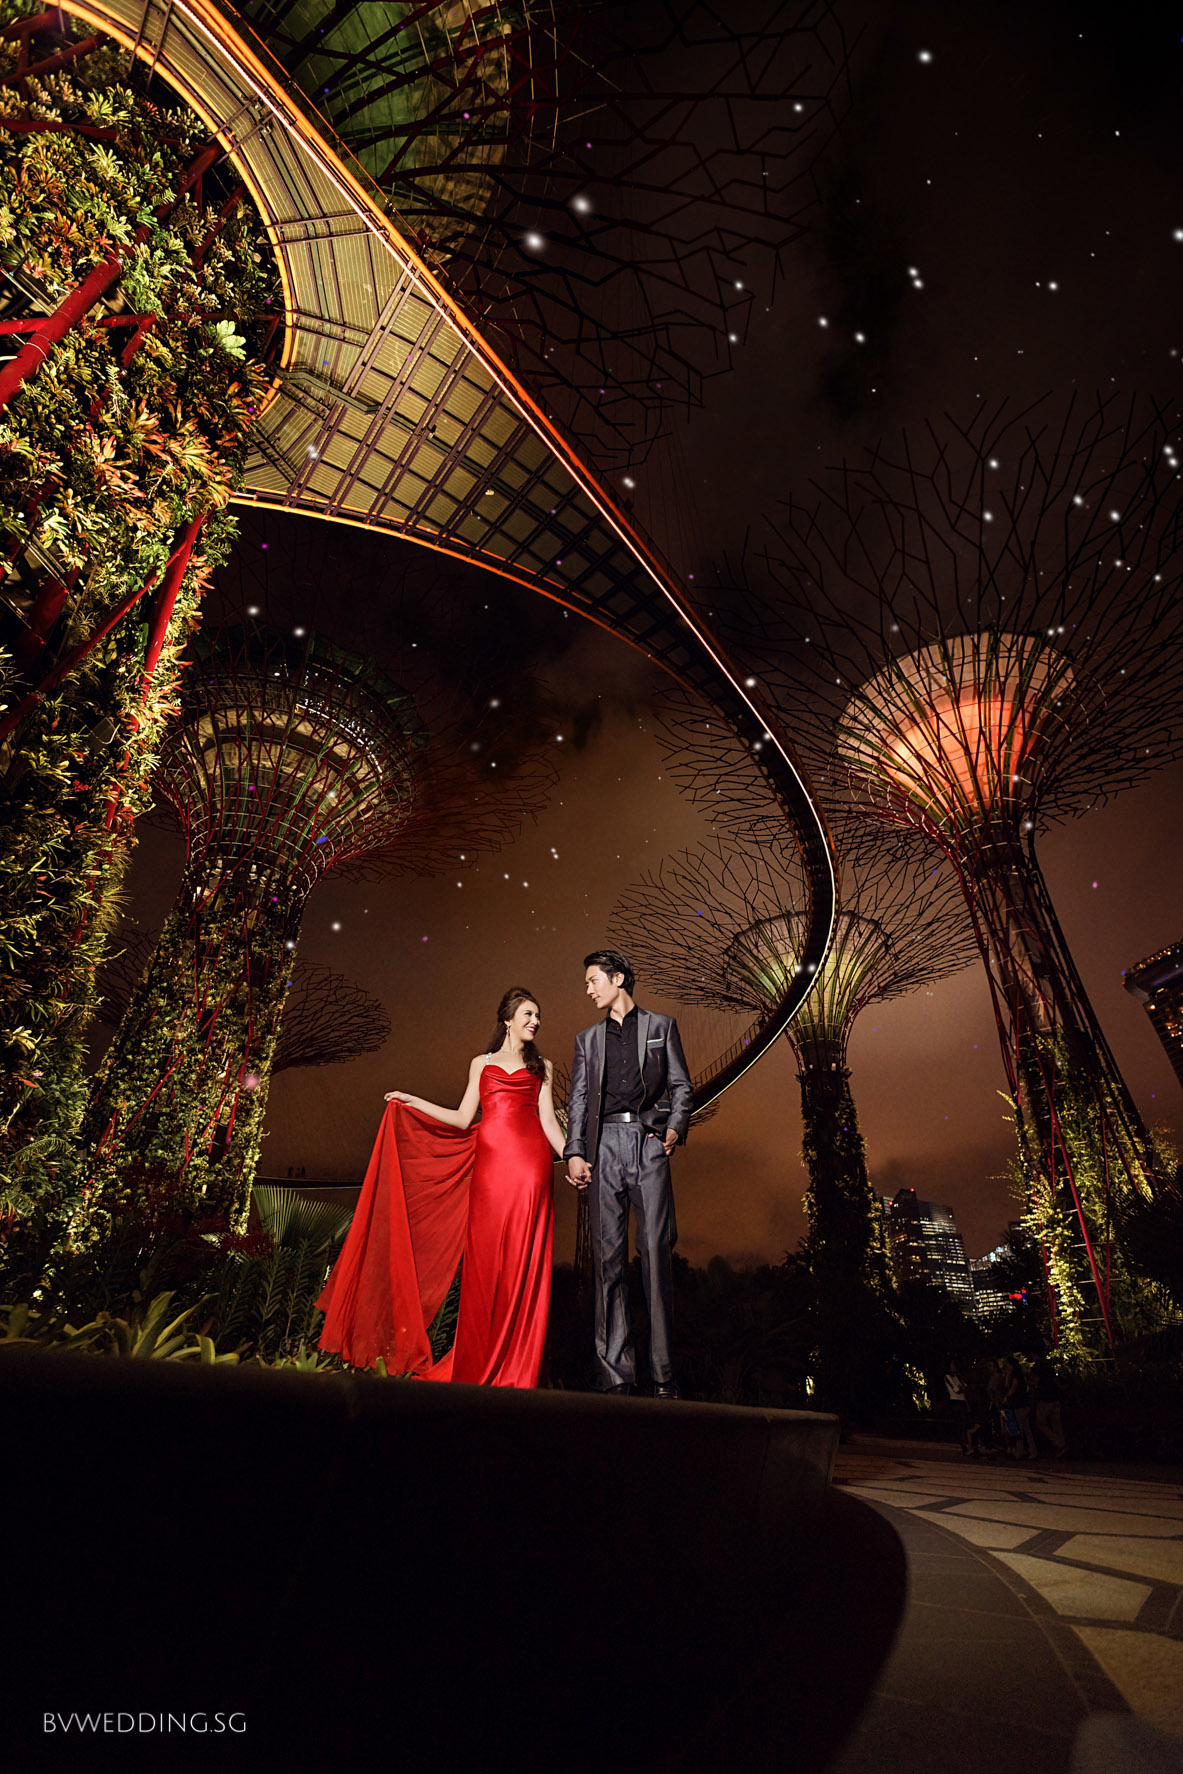 Singapore Wedding Photography garden by the bay